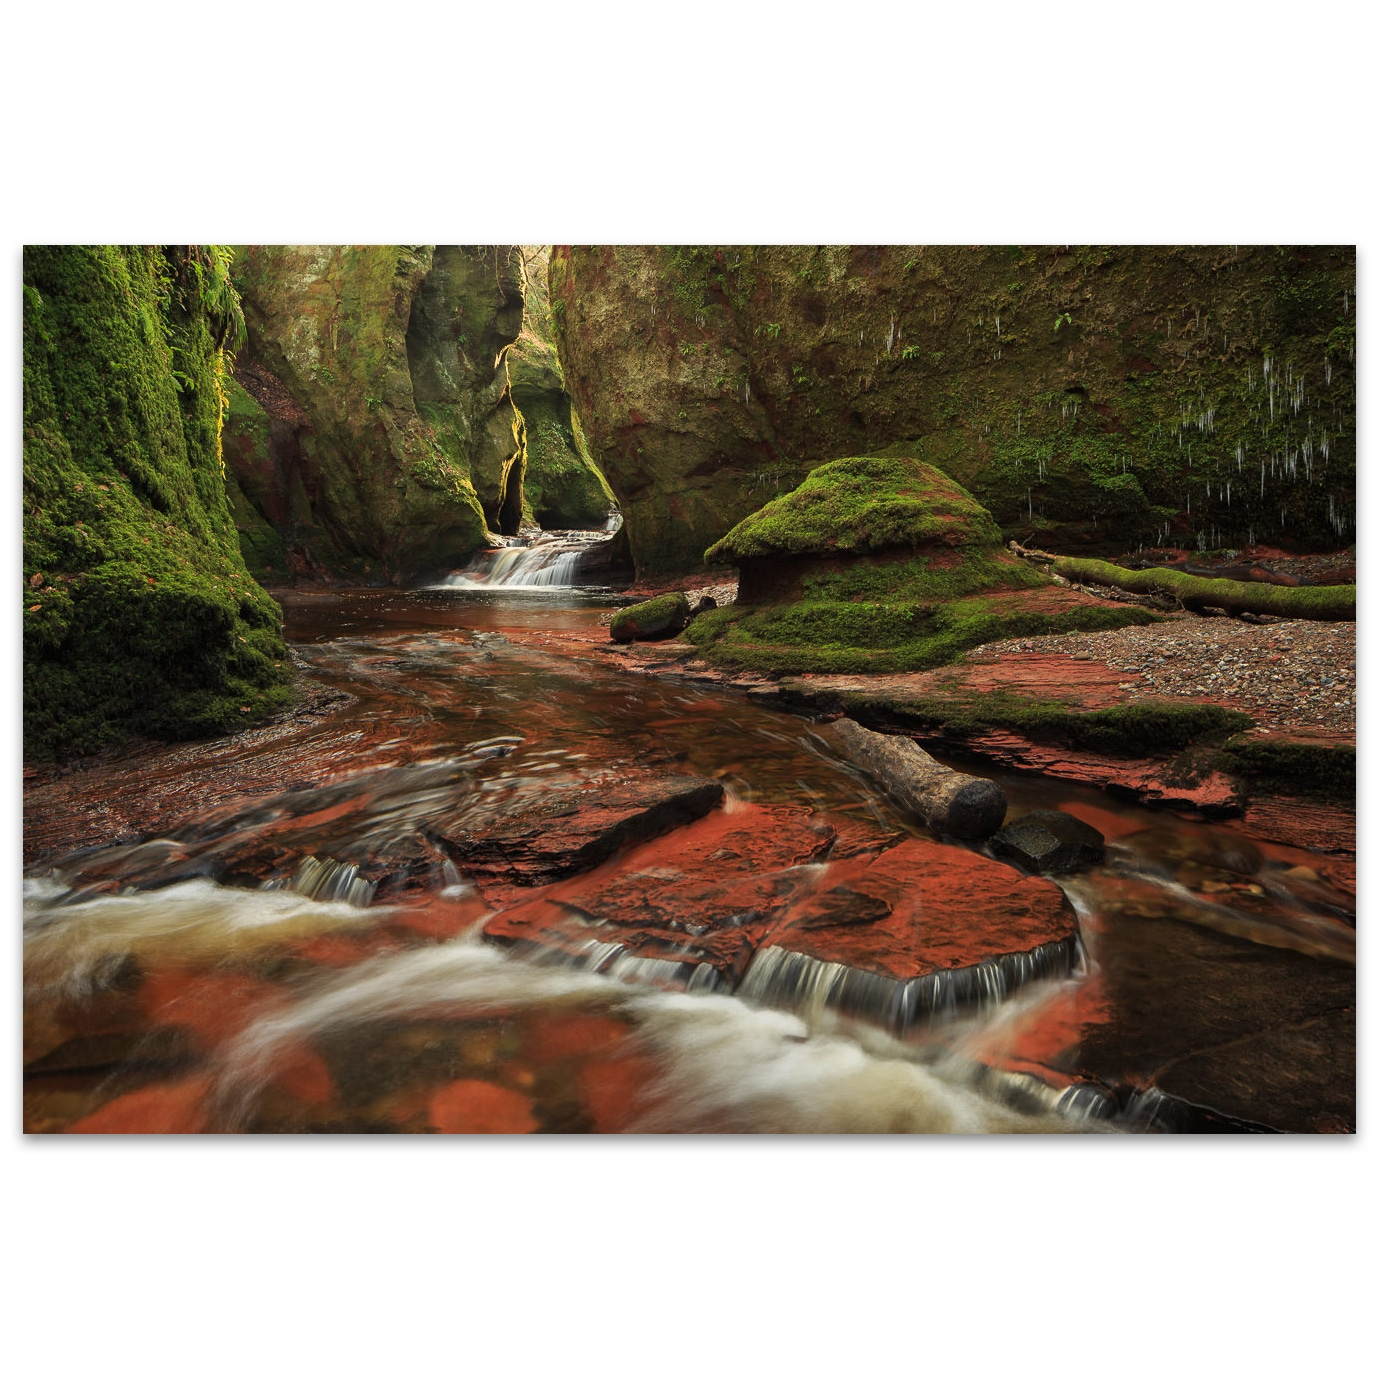 The Red Devils pulpit in Scotland